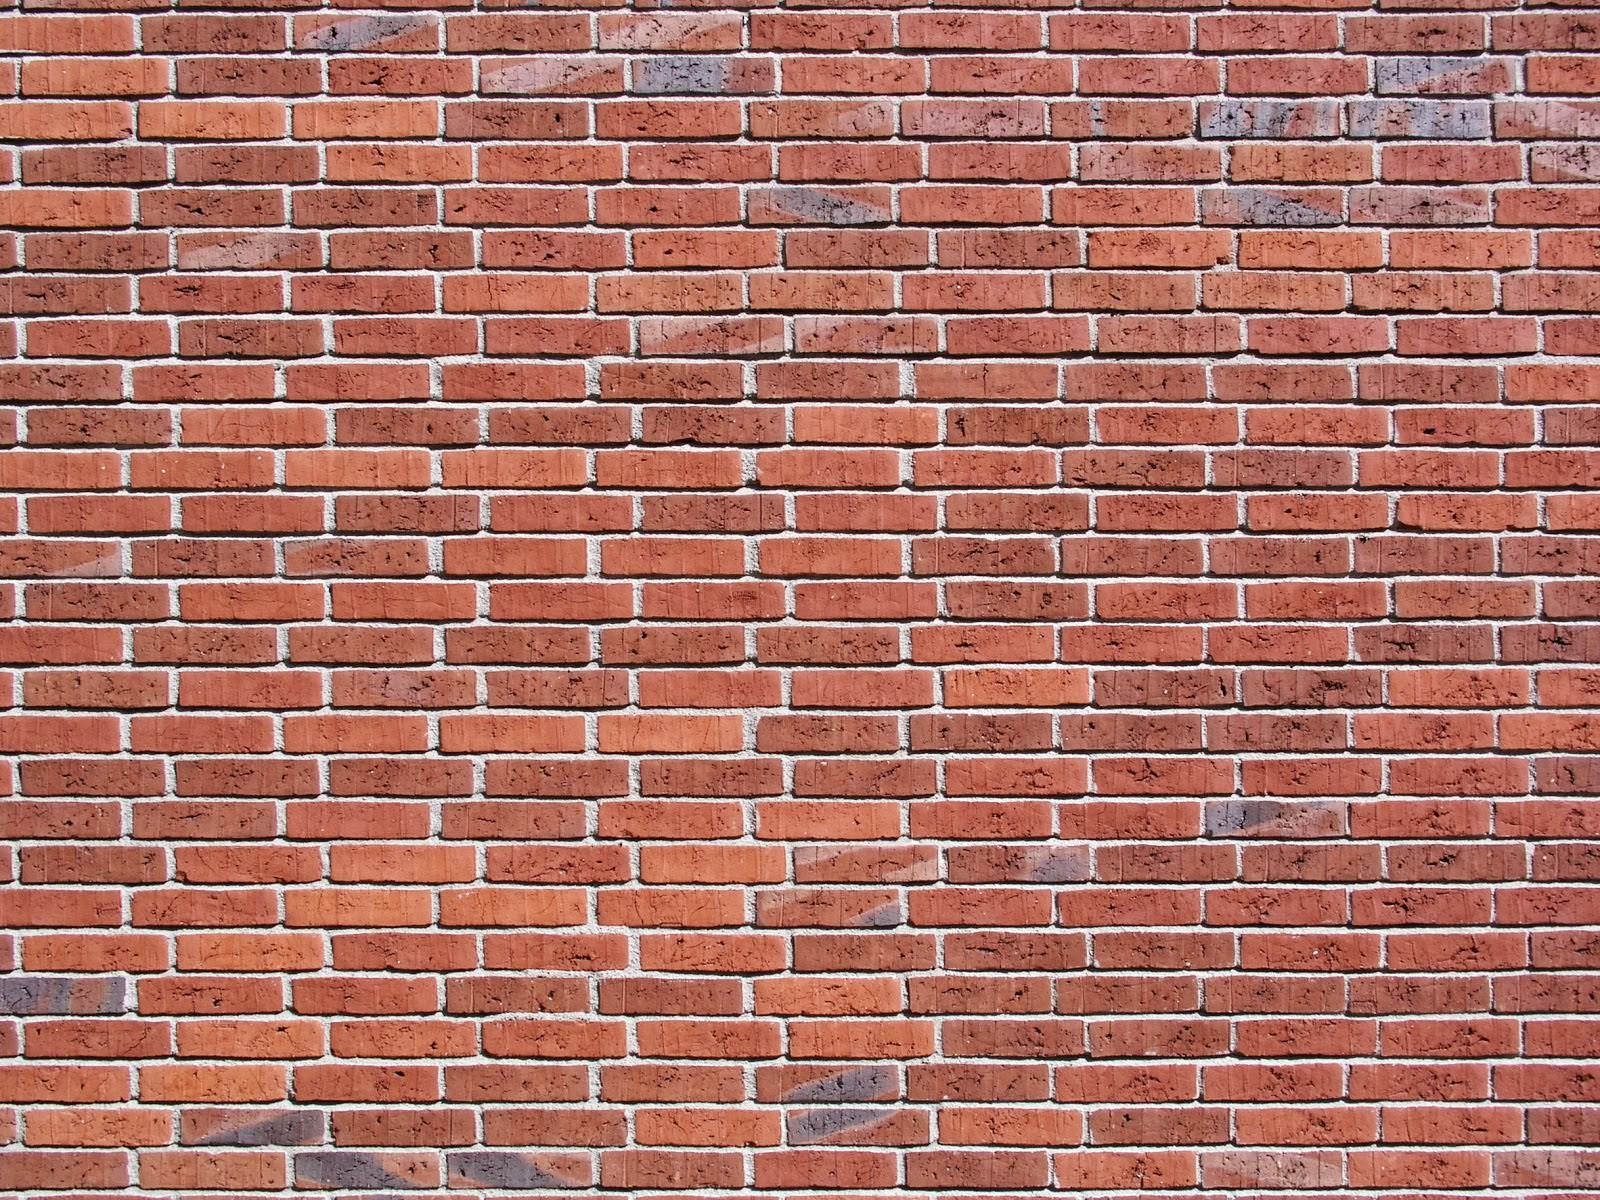 35 brick wall backgrounds psd vector eps jpg download for White brick wall